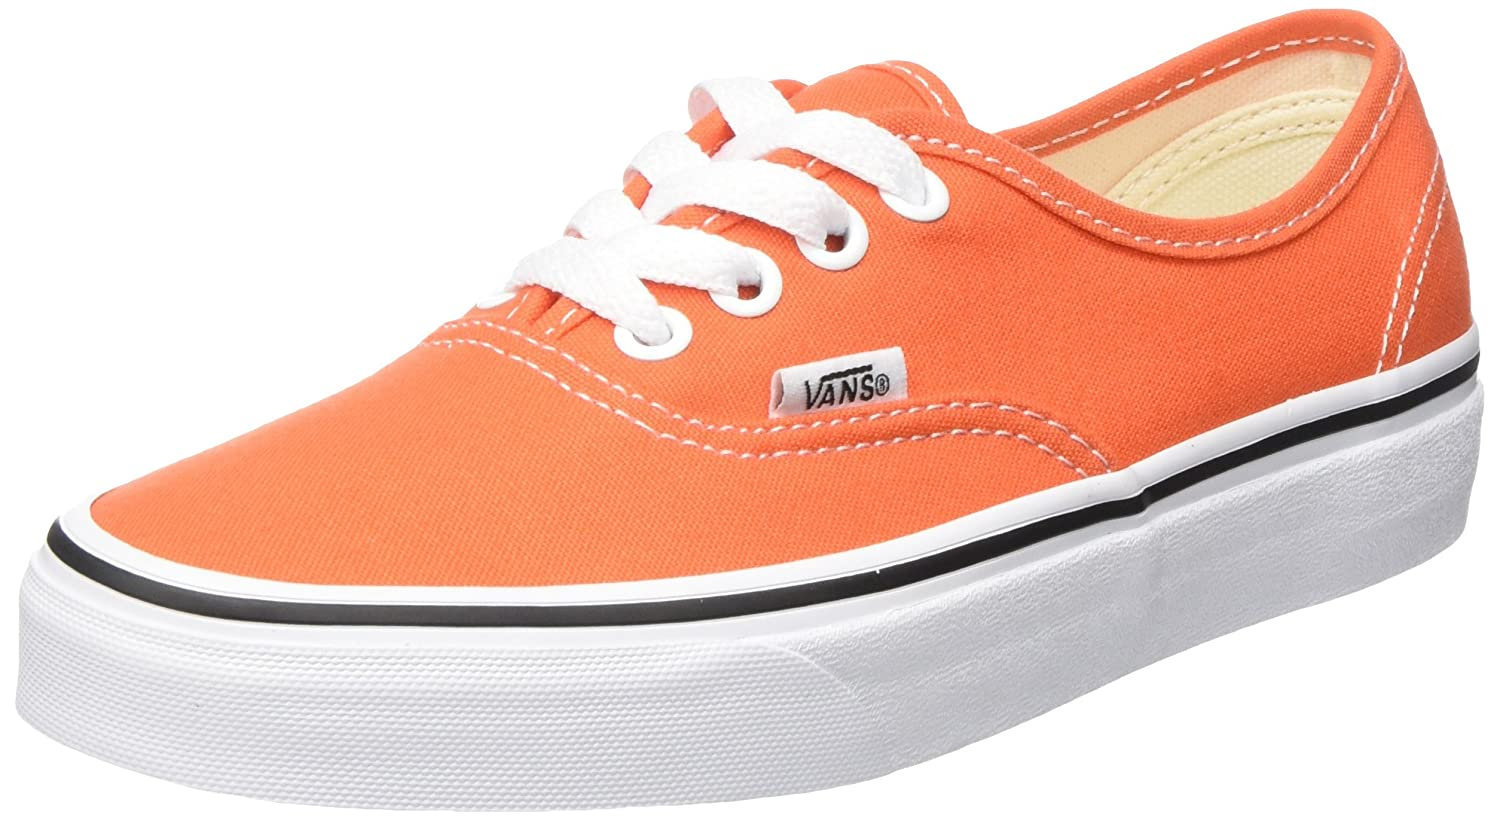 Vans Unisex-Erwachsene Authentic Sneaker  36.5 EU|Orange (Flame/True White 2w1)